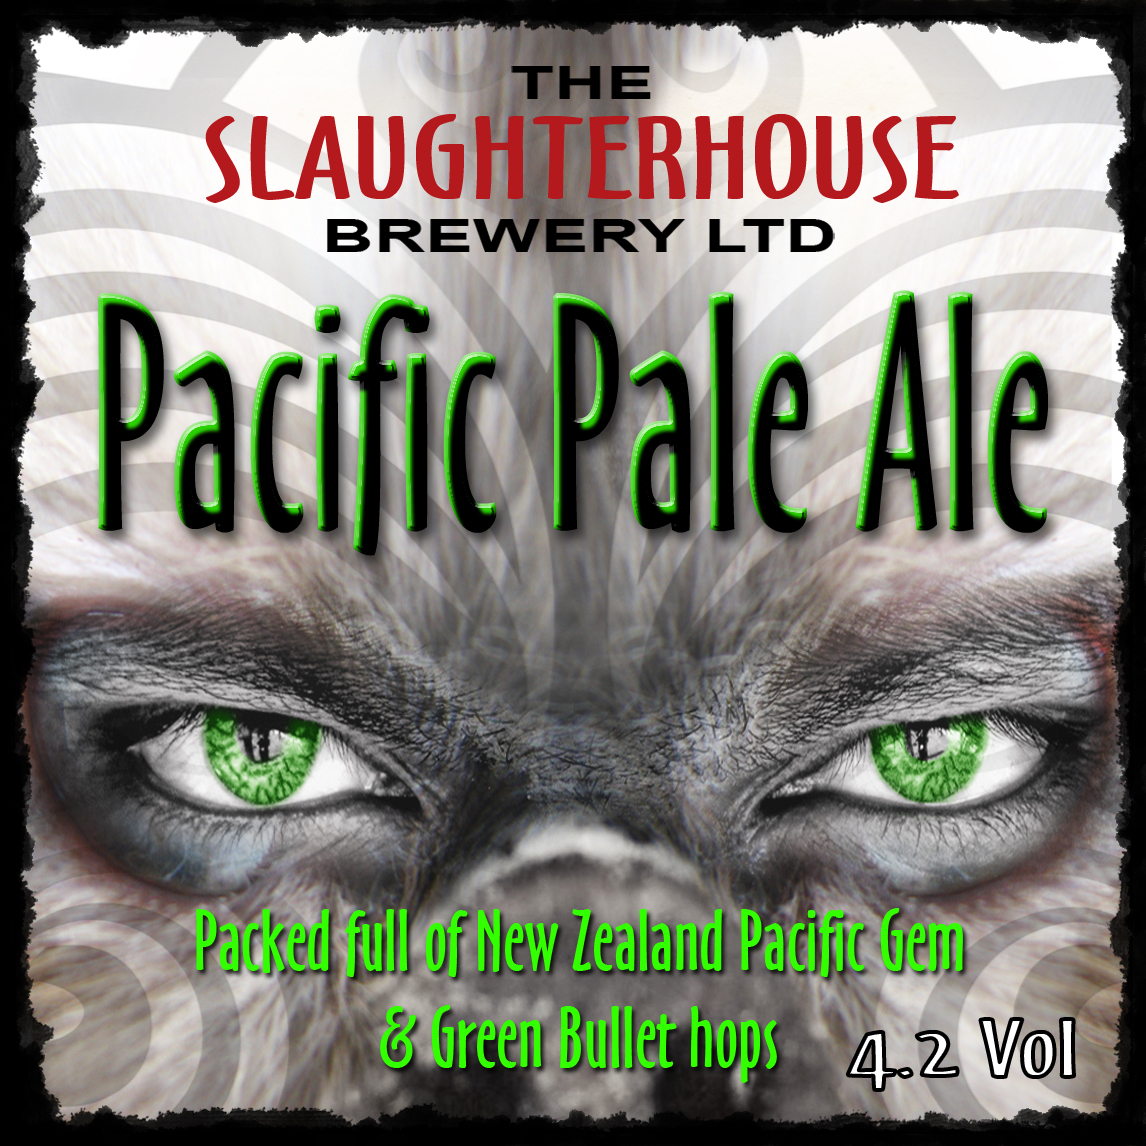 Pacific Pale Ale Slaughterhouse Brewery